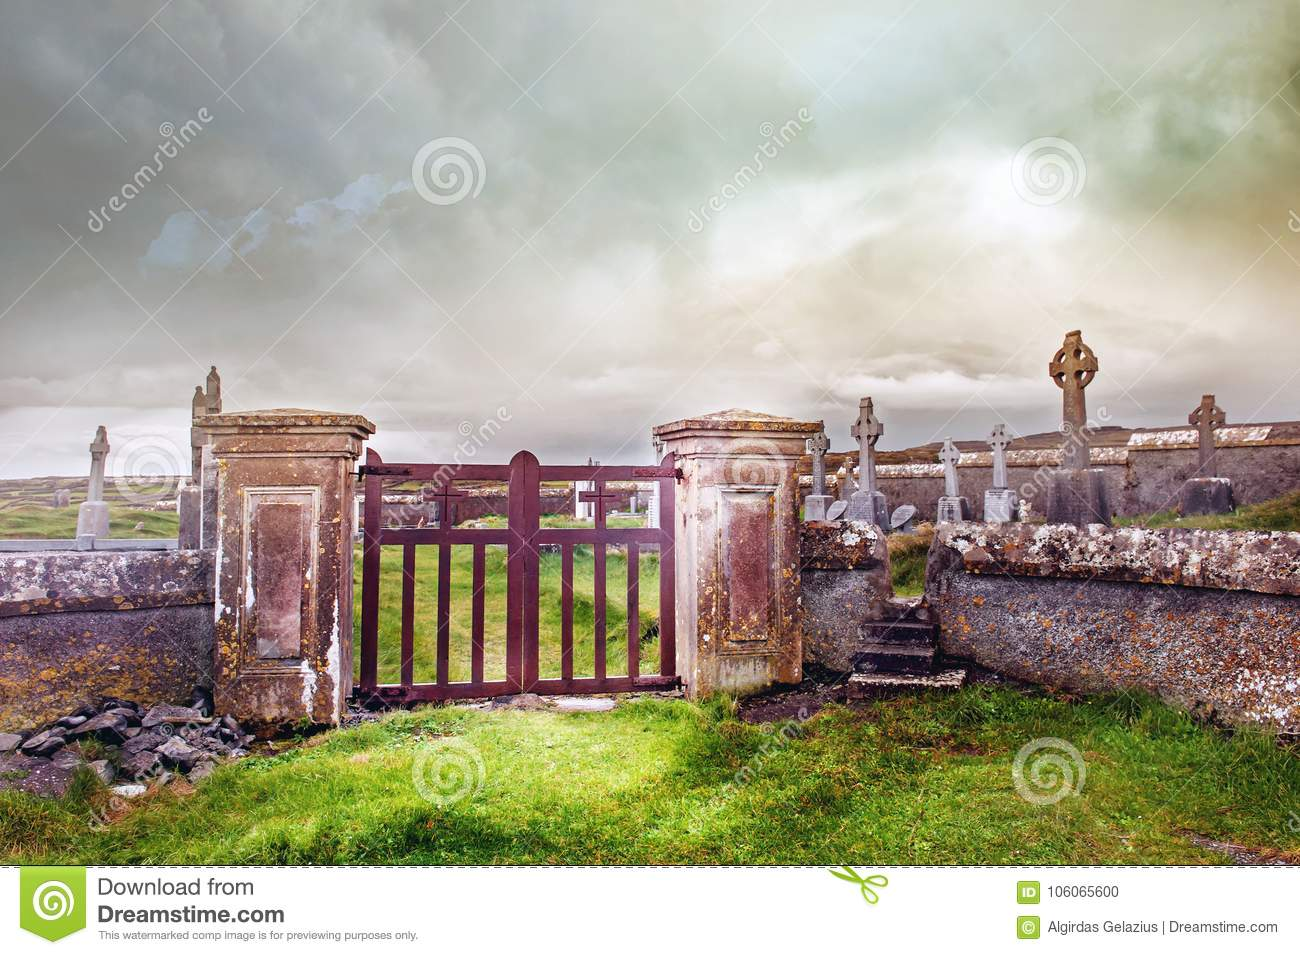 Entrance to the cemetery with metal gates and concrete fence